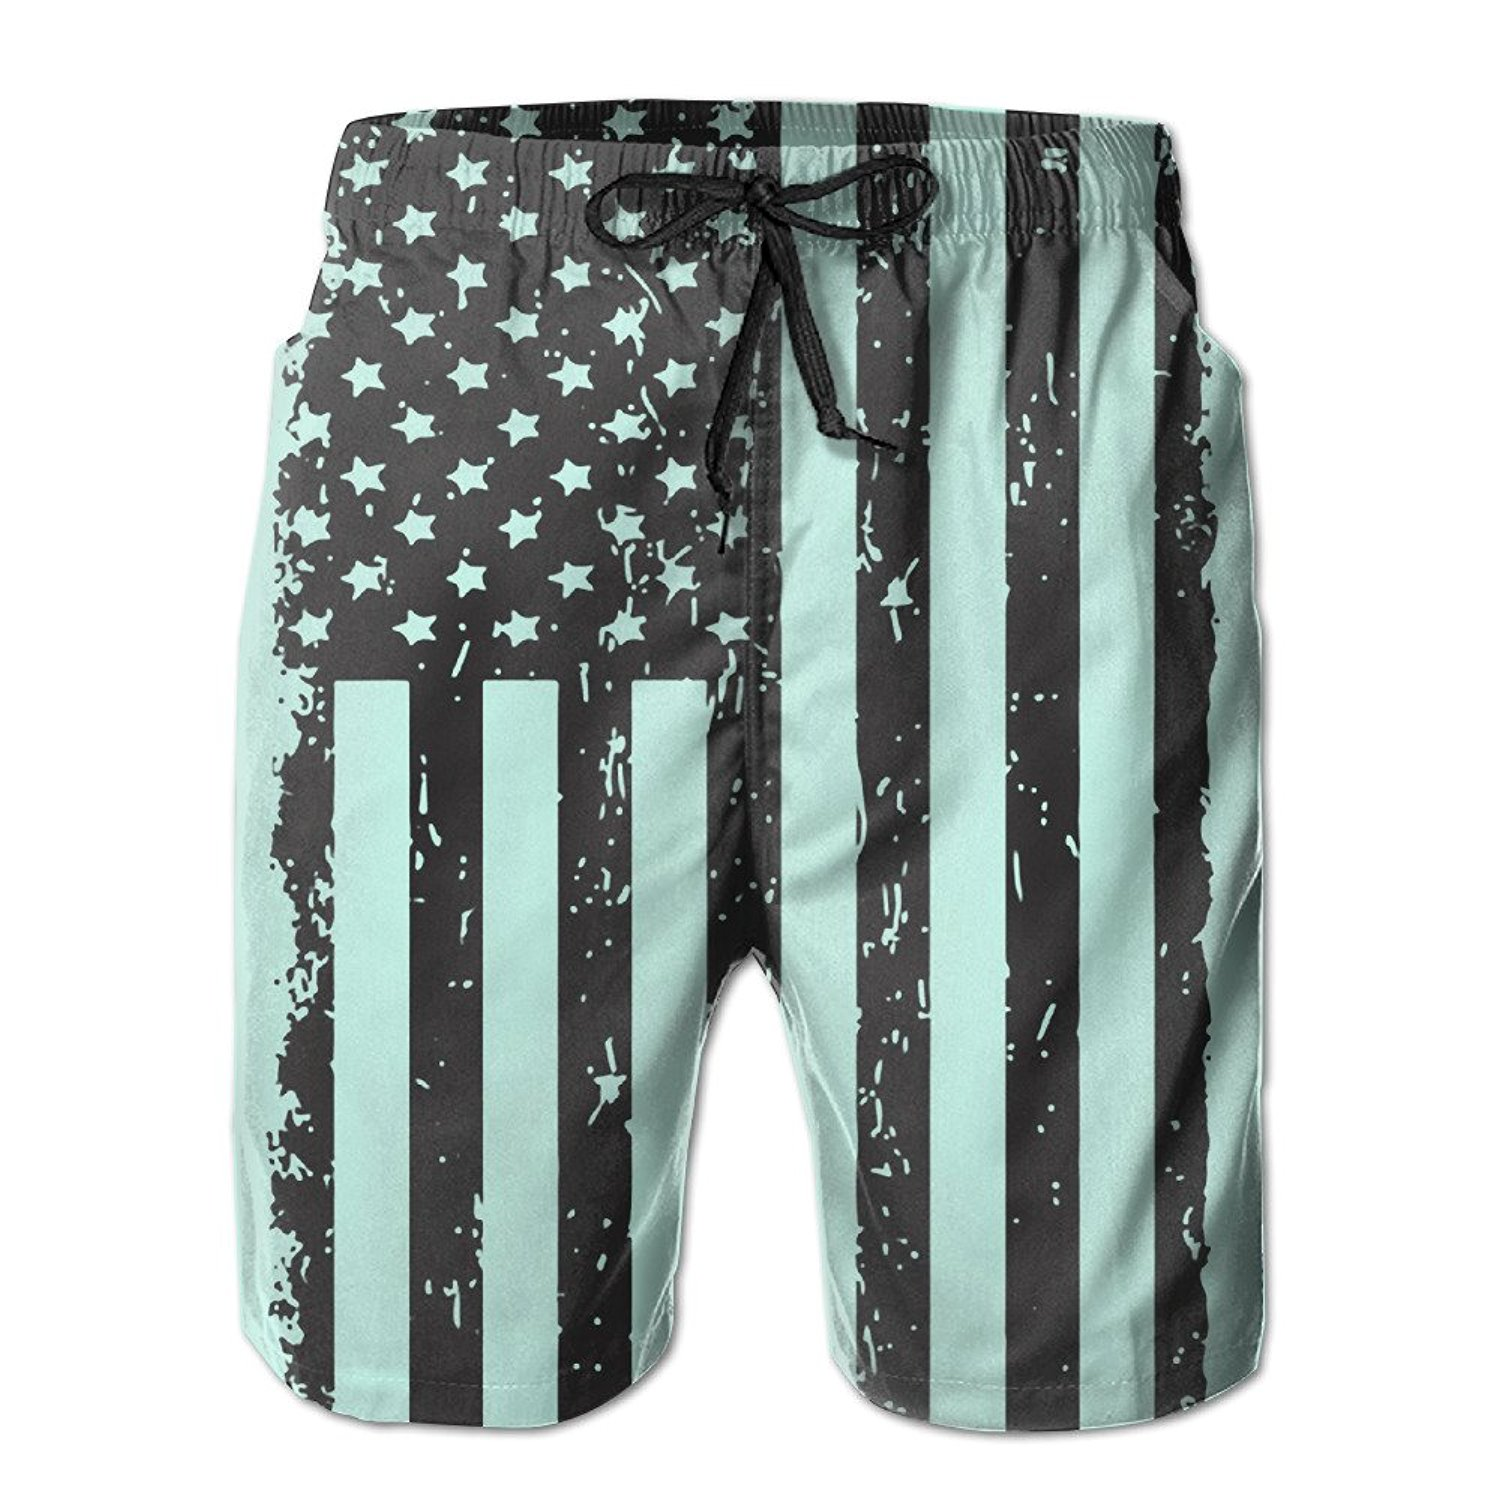 6ebf0ff417d41 Get Quotations · Big Black American Flag Strong Cool Men's Beach Shorts  Swimming Beach Shorts Swim Shorts Solid Color